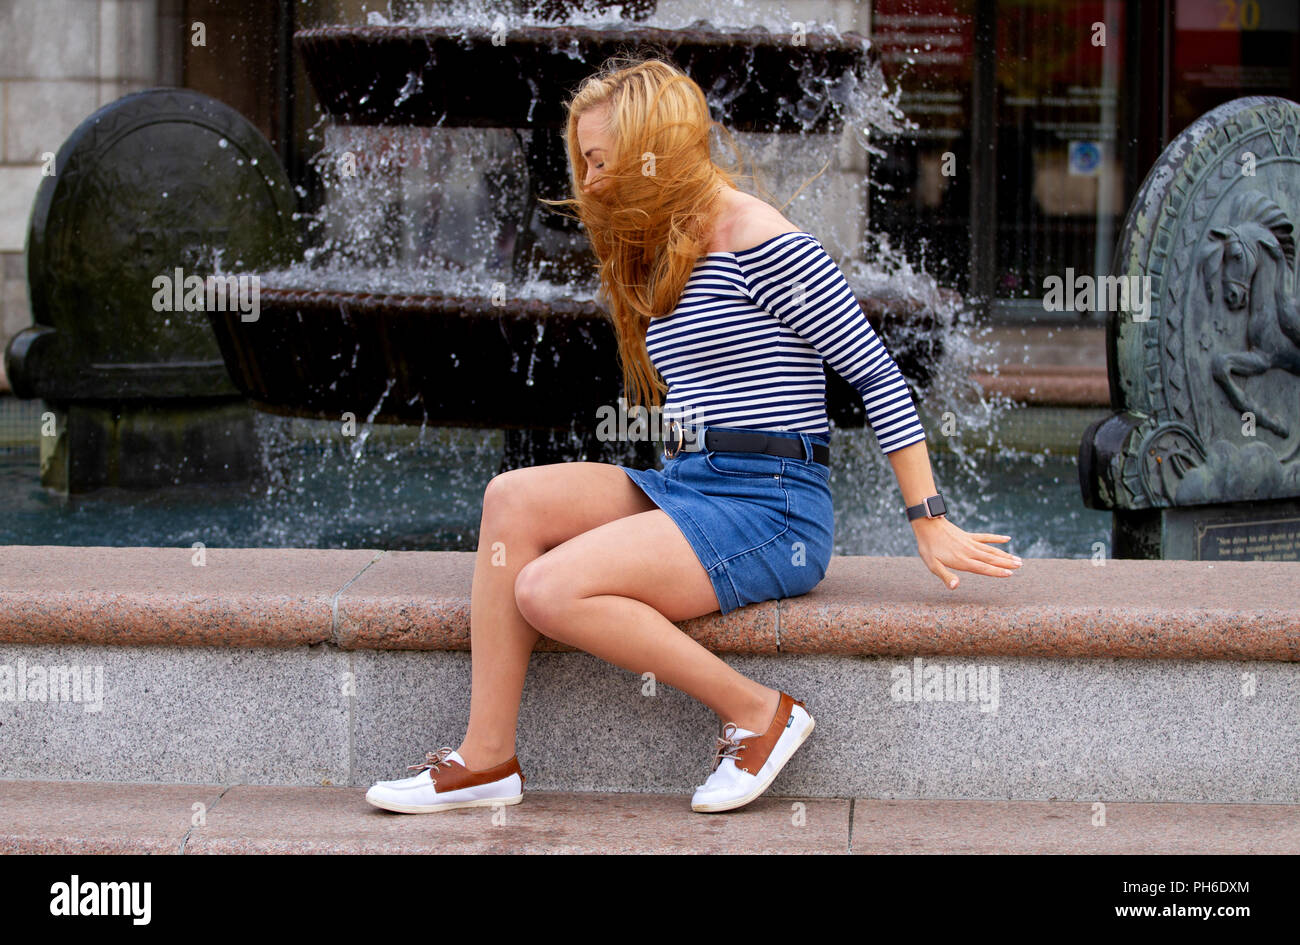 A young woman with long blond hair blowing across her face while sitting beside a fountain at the City Square in Dundee, UK - Stock Image